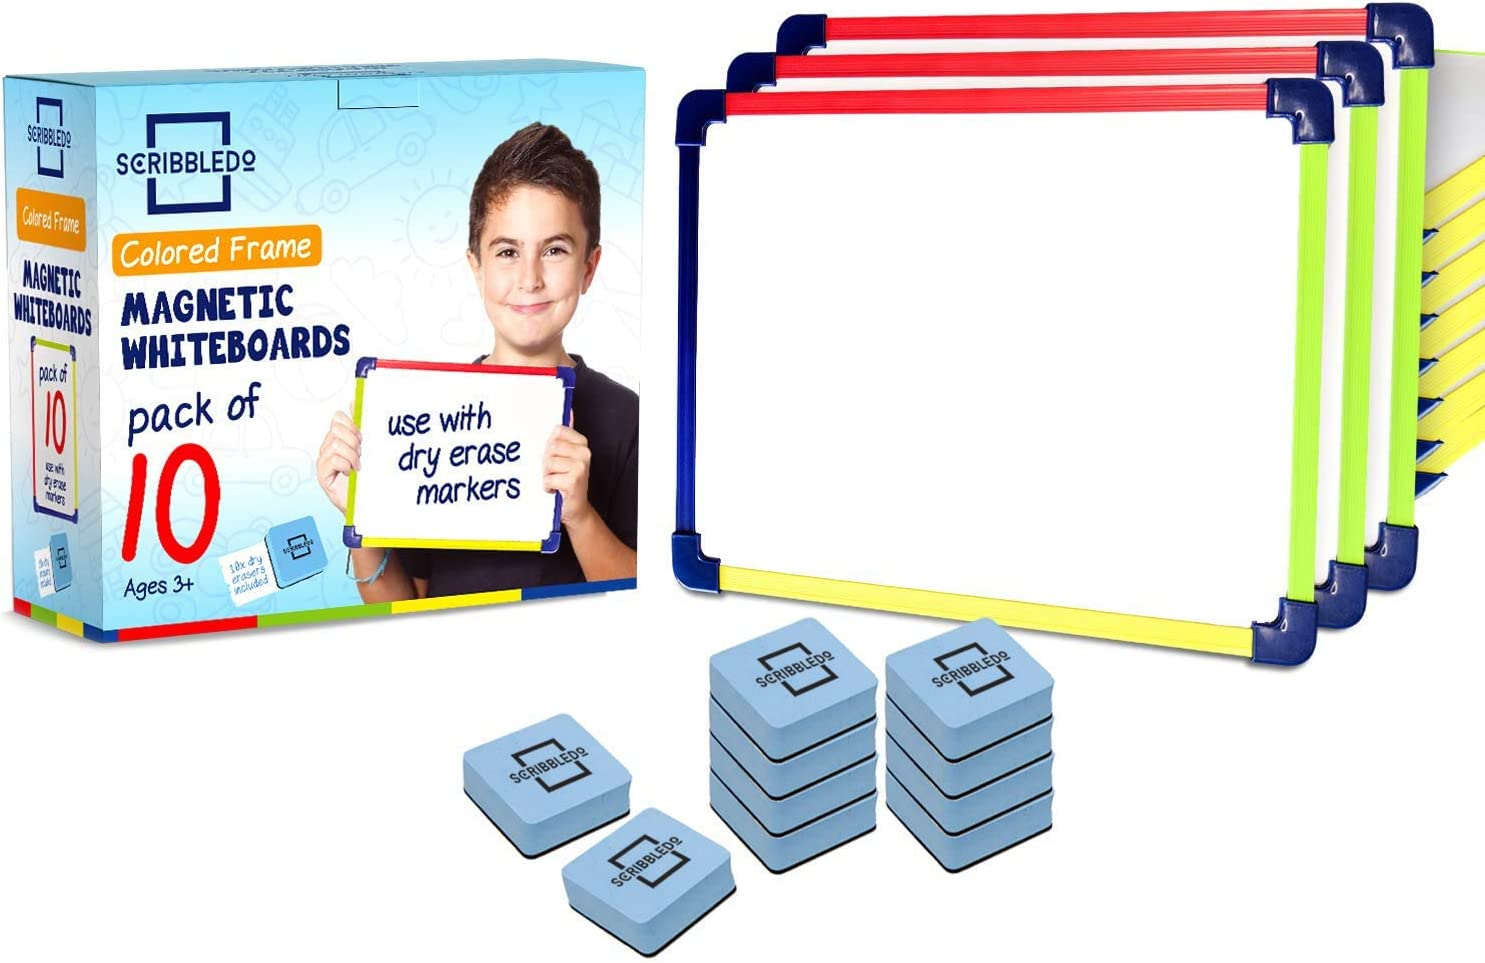 """Colored Frame Magnetic Dry Erase White Boards Pack of 10 l 9"""" X 12"""" Whiteboard : Office Products"""